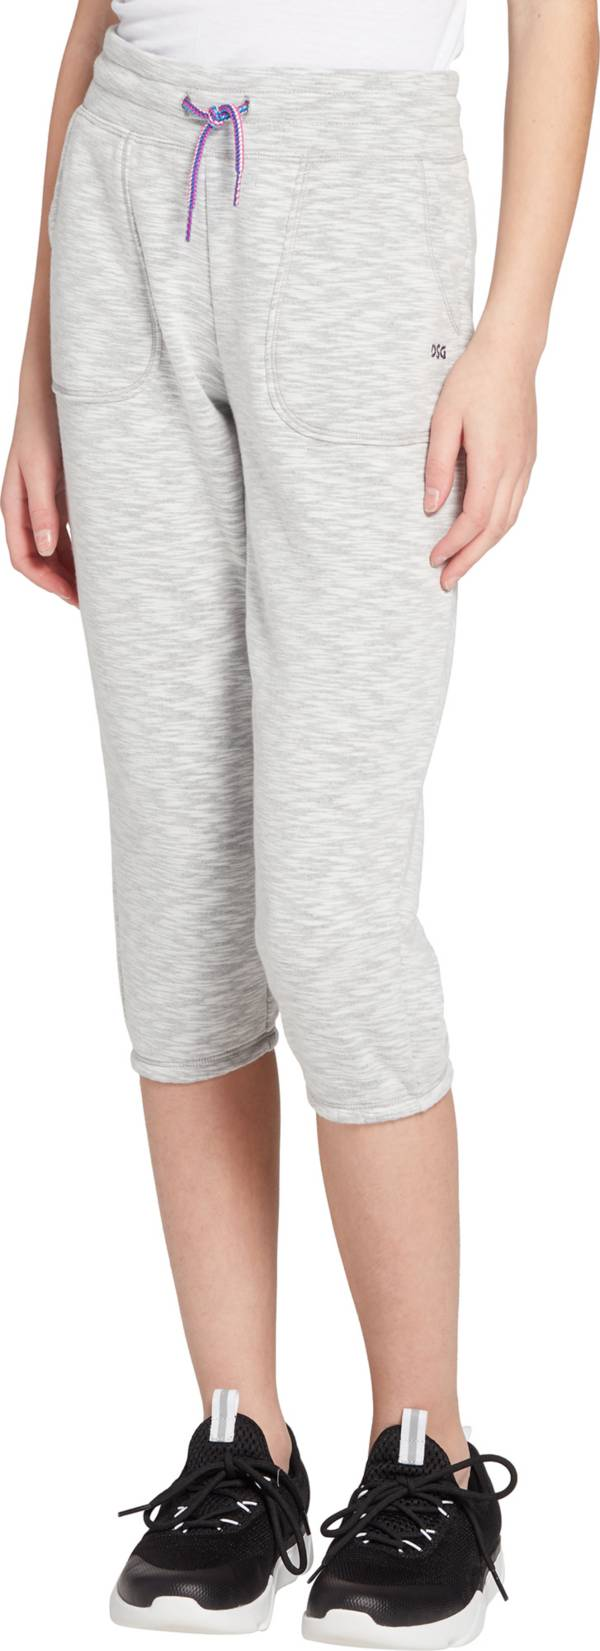 DSG Girls' Slub Cotton Fleece Capris product image